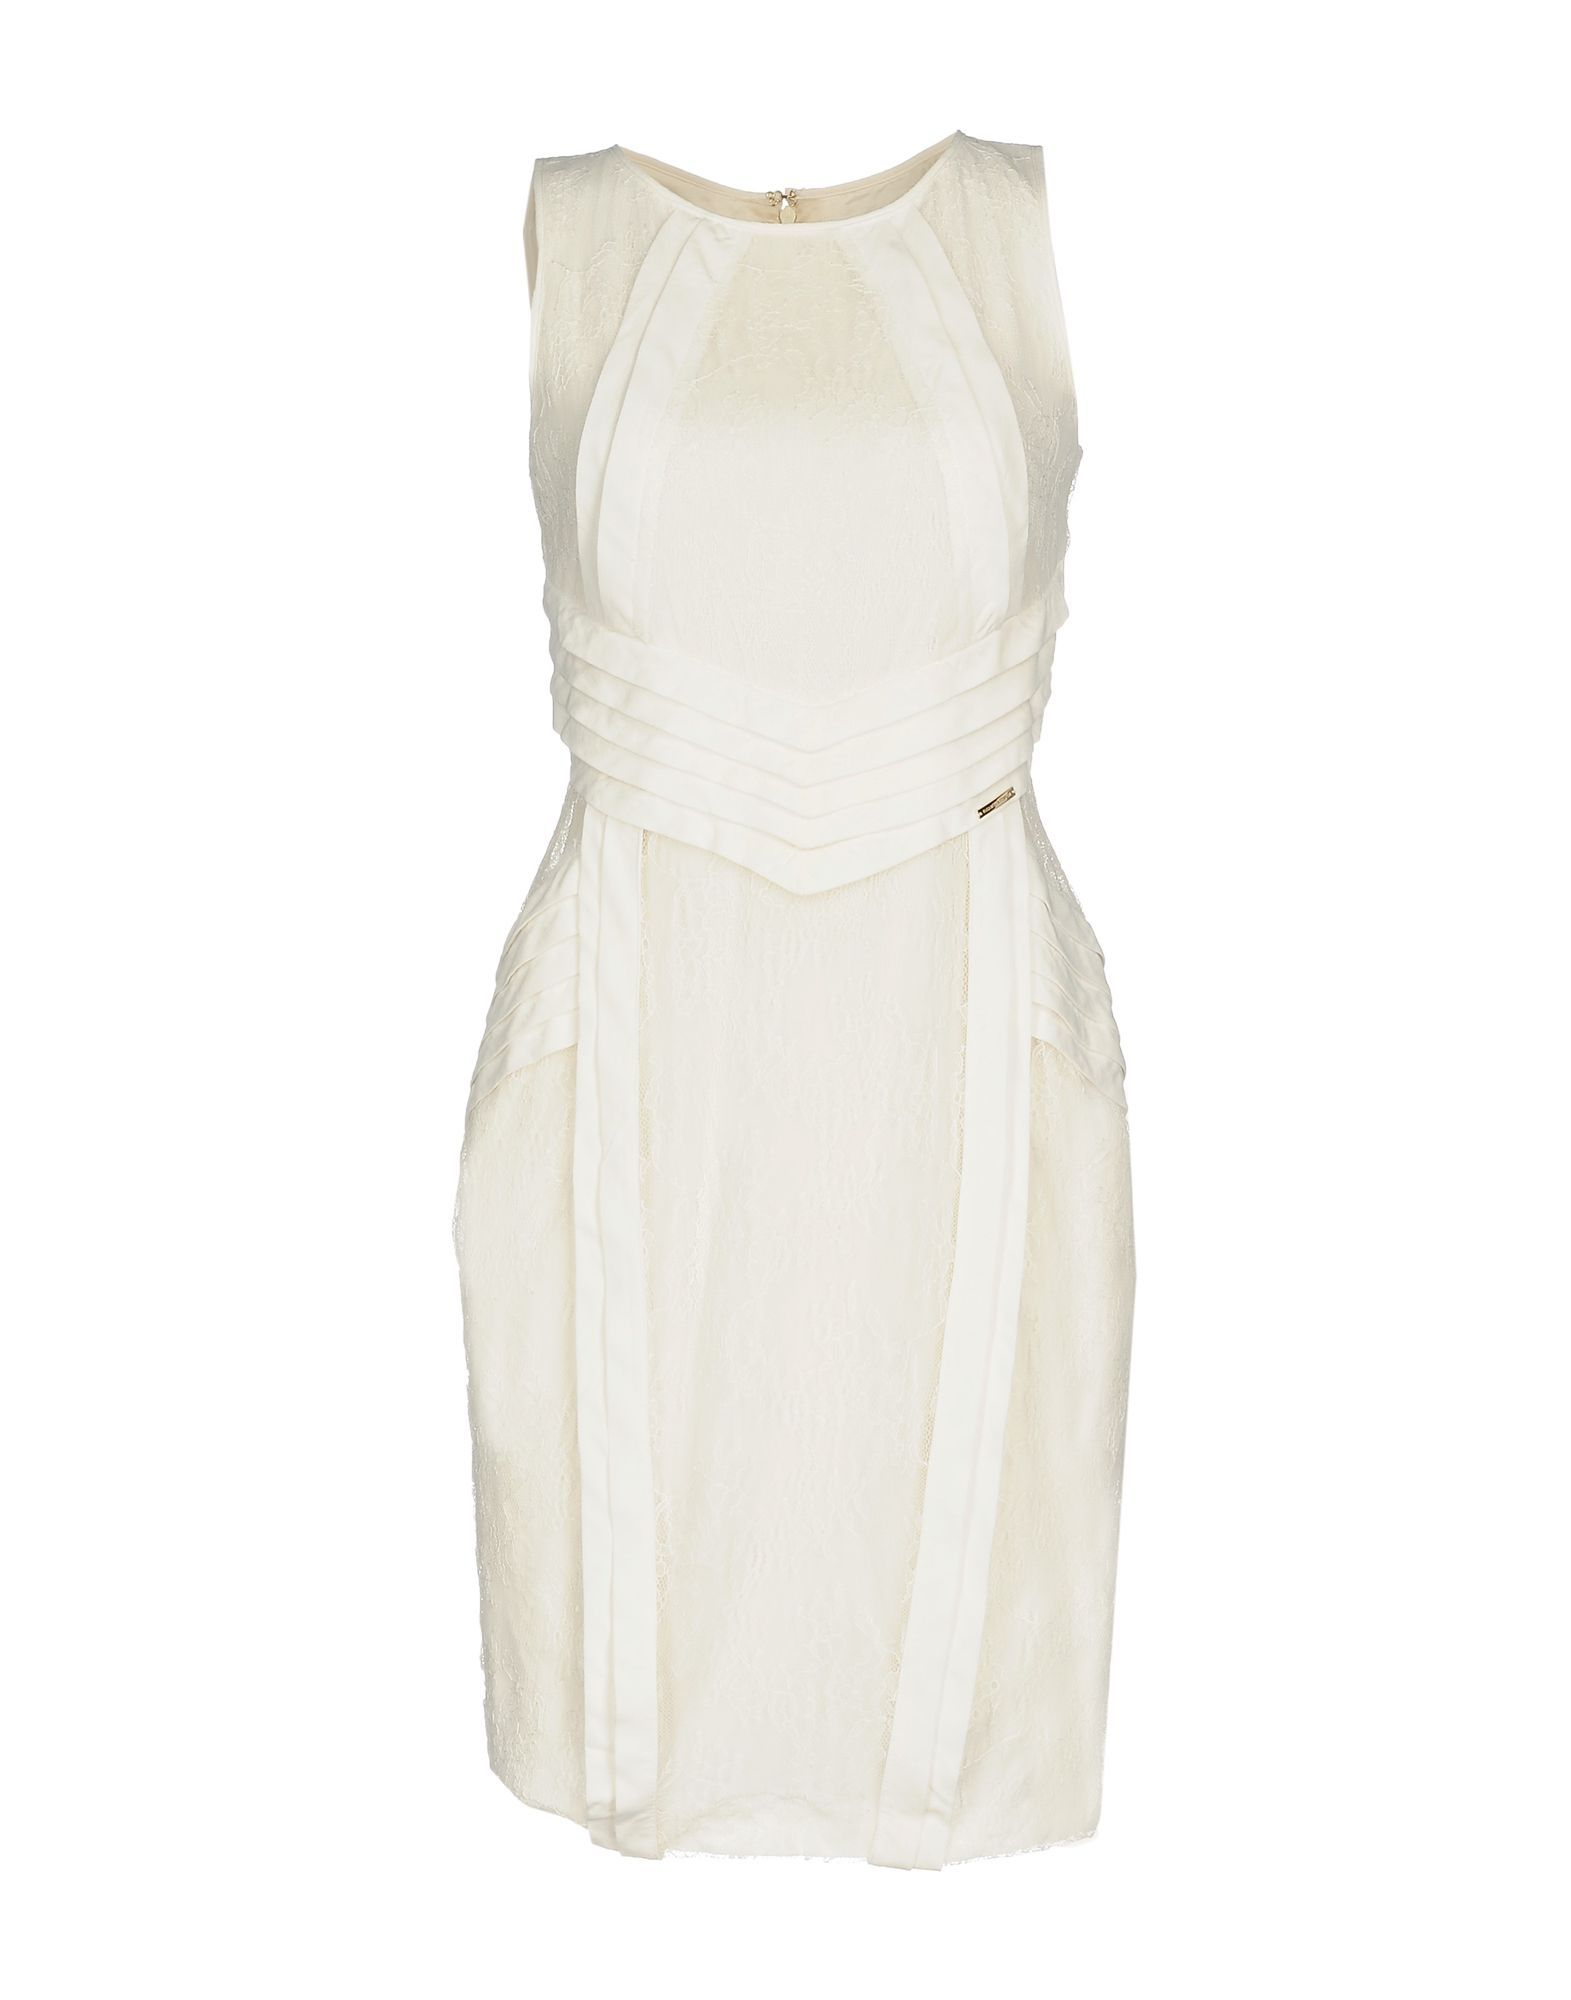 Elisabetta Franchi White Lace Dress